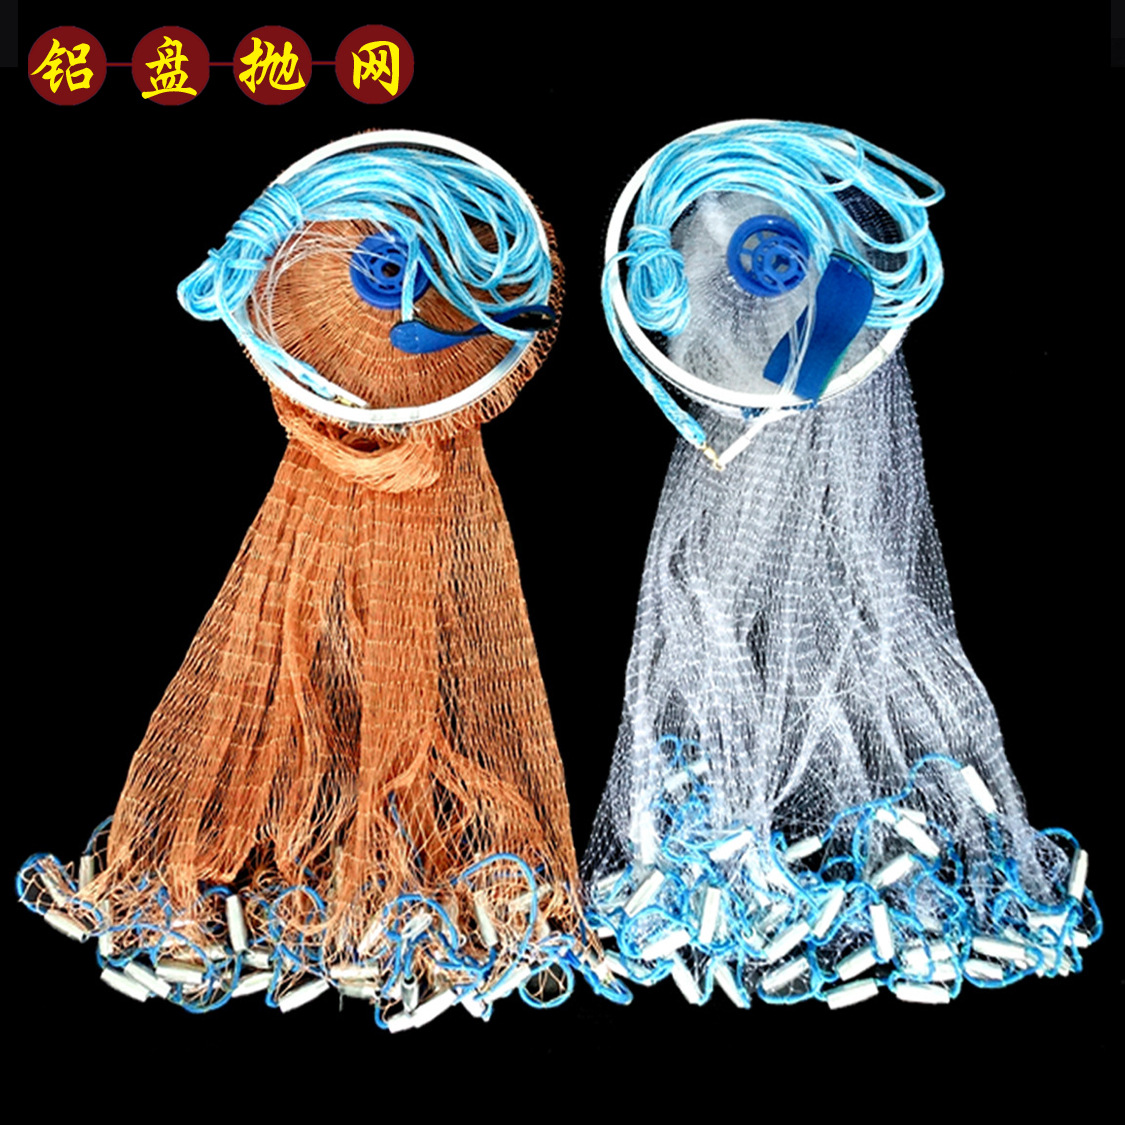 Seine Aluminum Ring Tire Monofilament Line Net Casting Fool Network Net Spin Cast Net Fishnet Fishing Gear Customizable